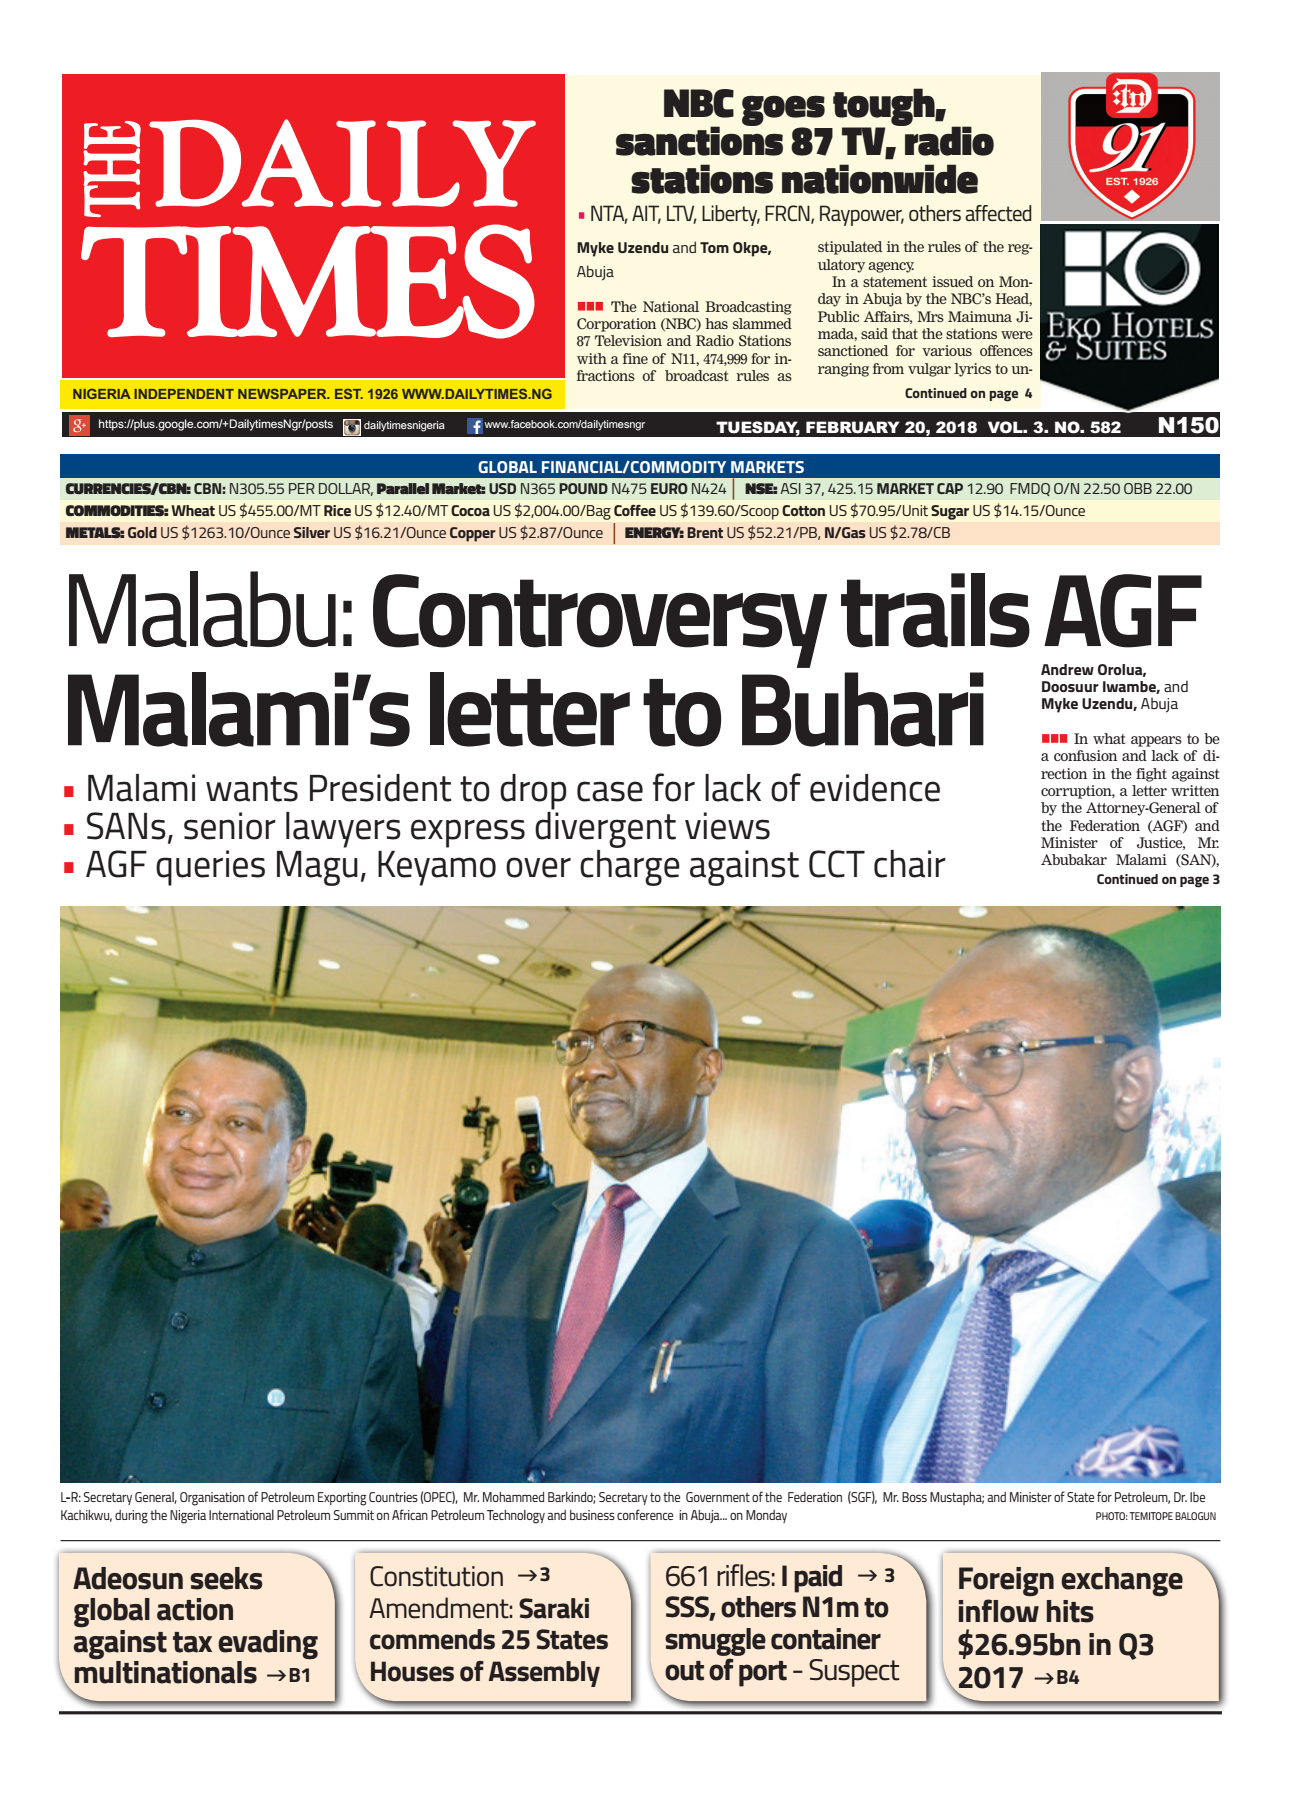 Daily Times Newspaper, Tuesday, February 20, 2018